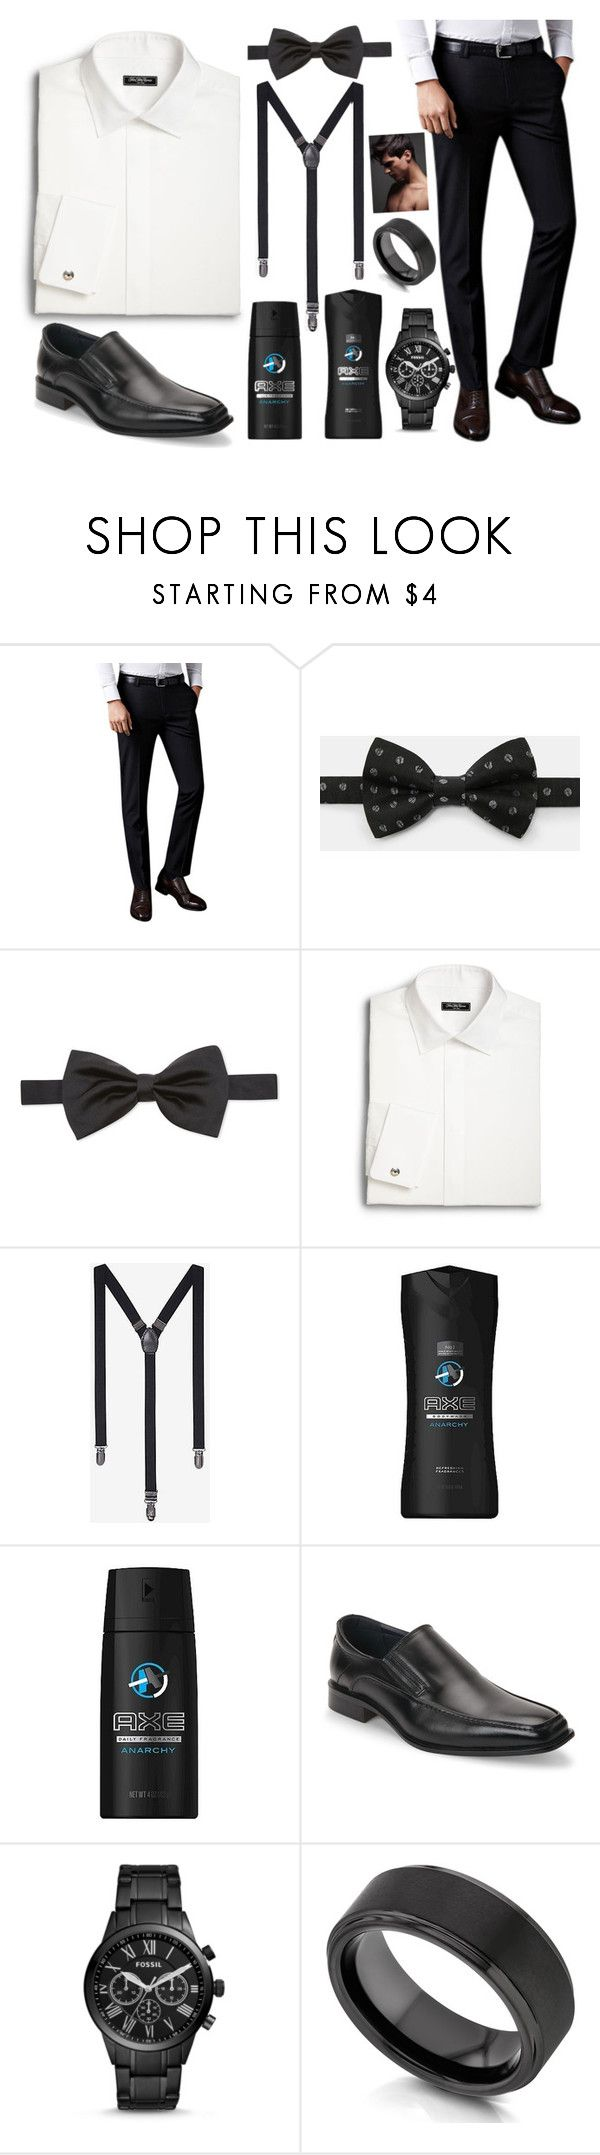 """""""No Title #200"""" by emily102901 ❤ liked on Polyvore featuring Ted Baker, Corneliani, Saks Fifth Avenue, Express, Axe, Joseph Abboud, FOSSIL, Kobelli, men's fashion and menswear"""